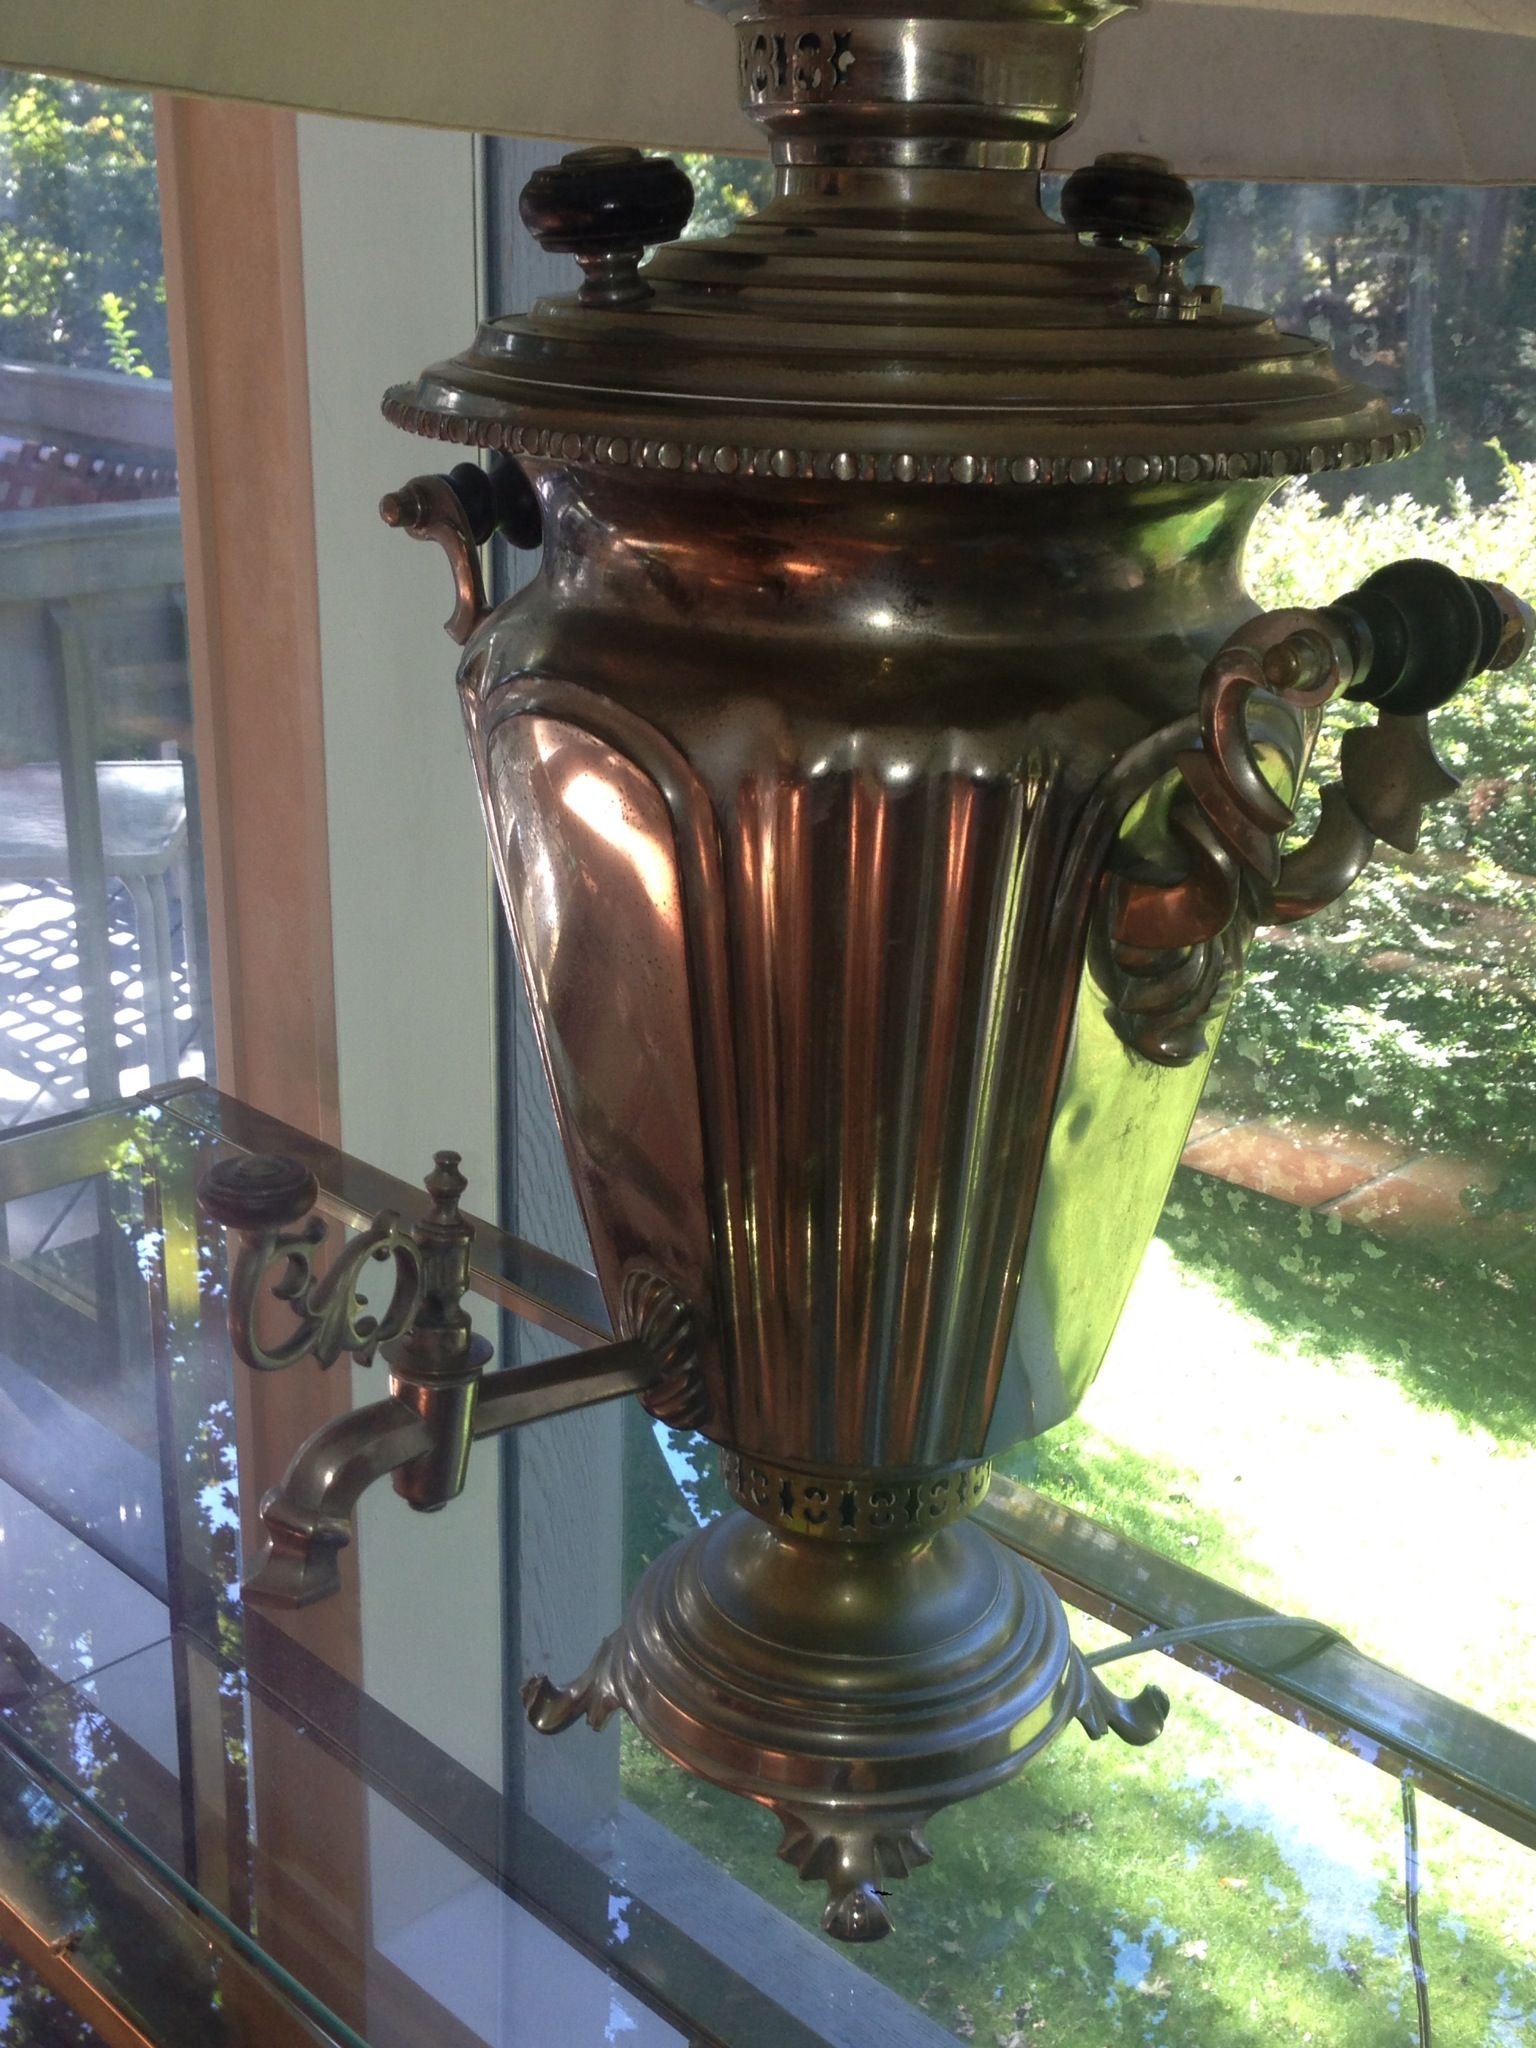 Watercress springs estate sales greenwich ct estate sale 12 sidney lanier lane october 28th to 30th misc lamps